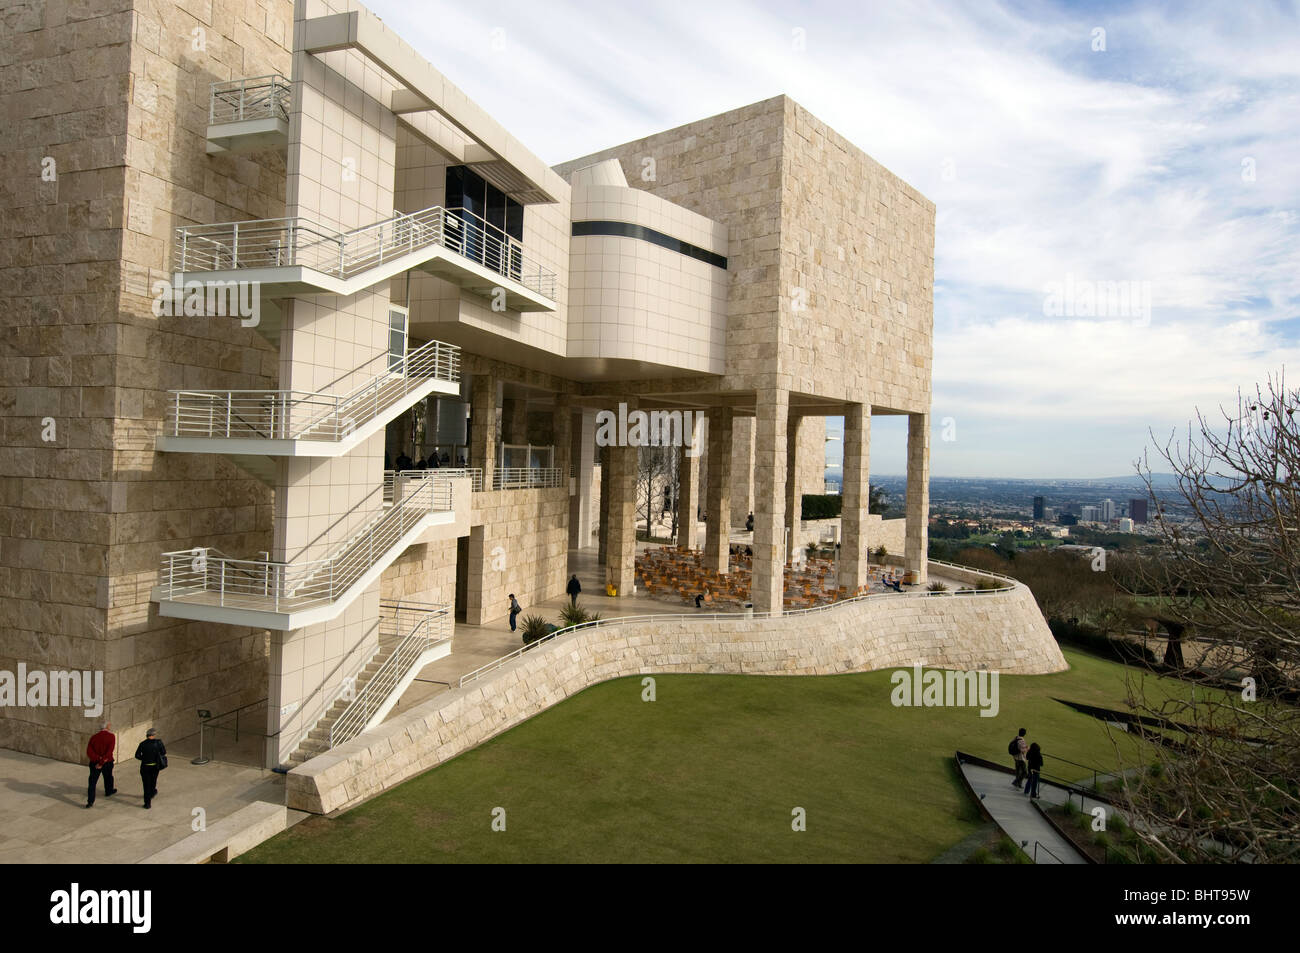 Das Getty Center for the Arts in Los Angeles Stockbild